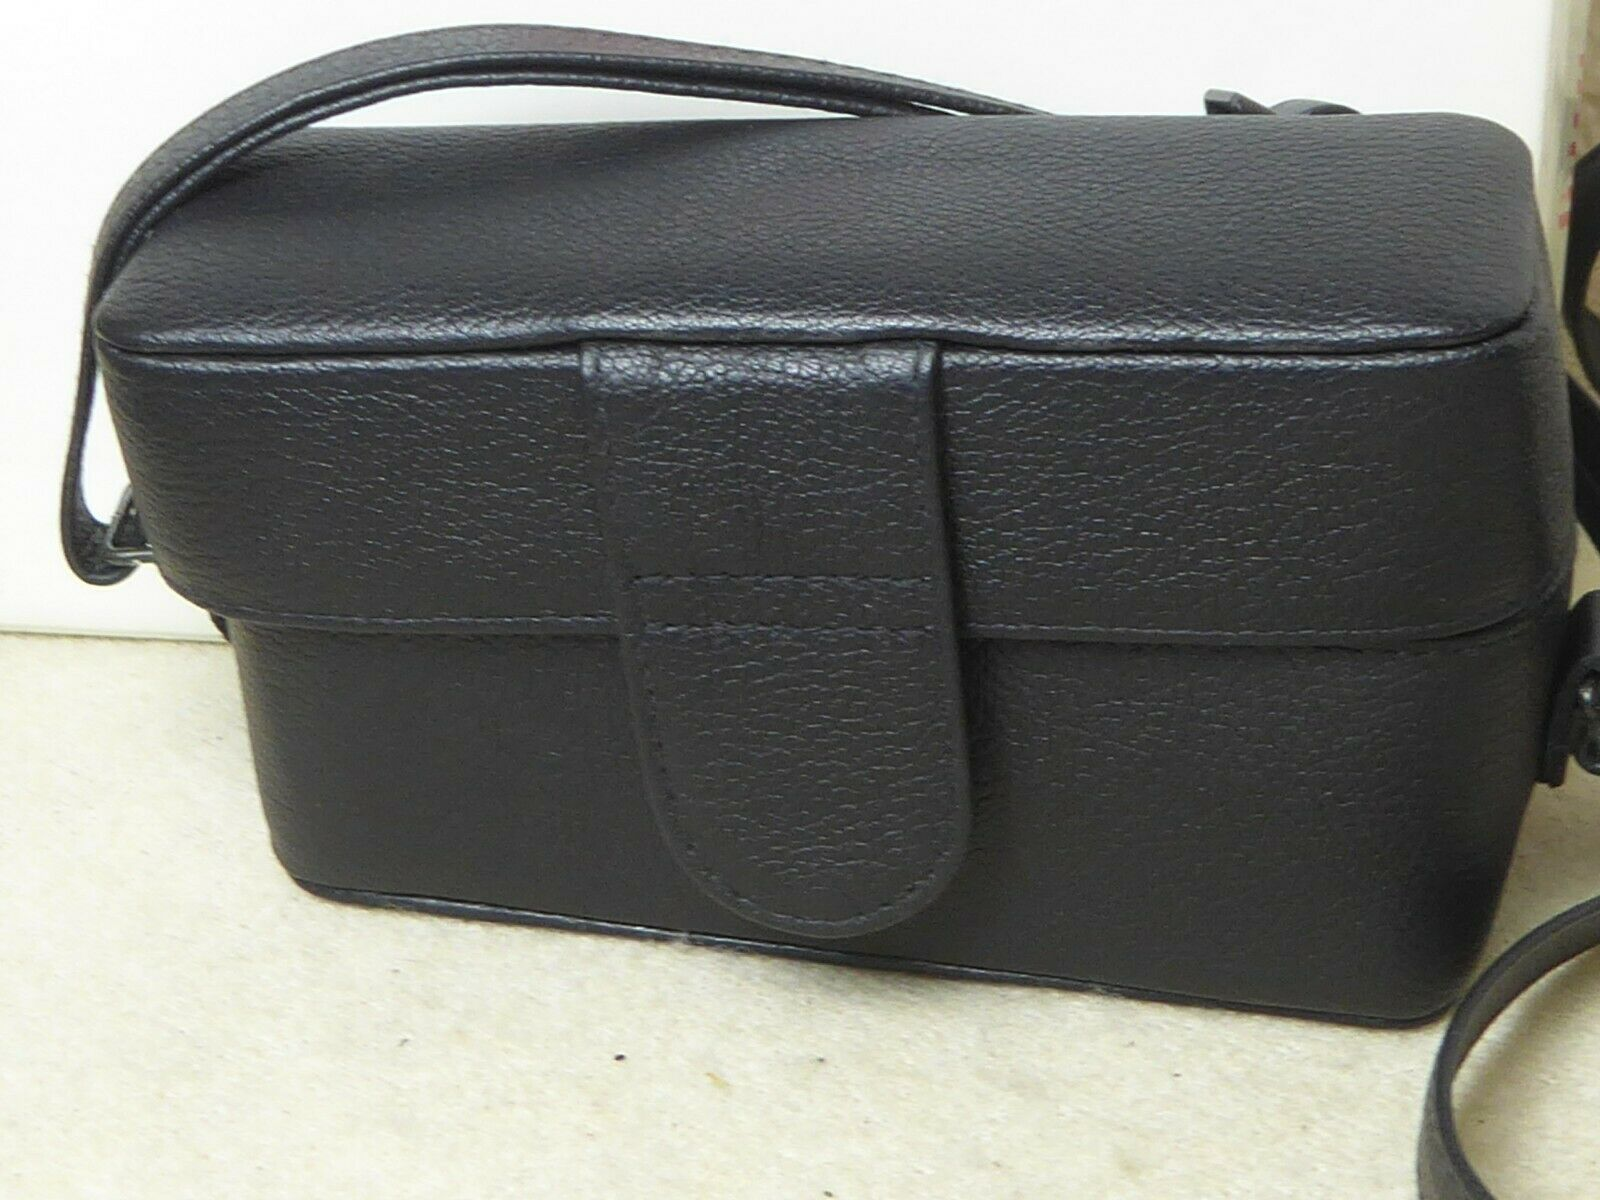 new boxed Leica Genuine Leather Camera Case Black for Leica Minilux 18506